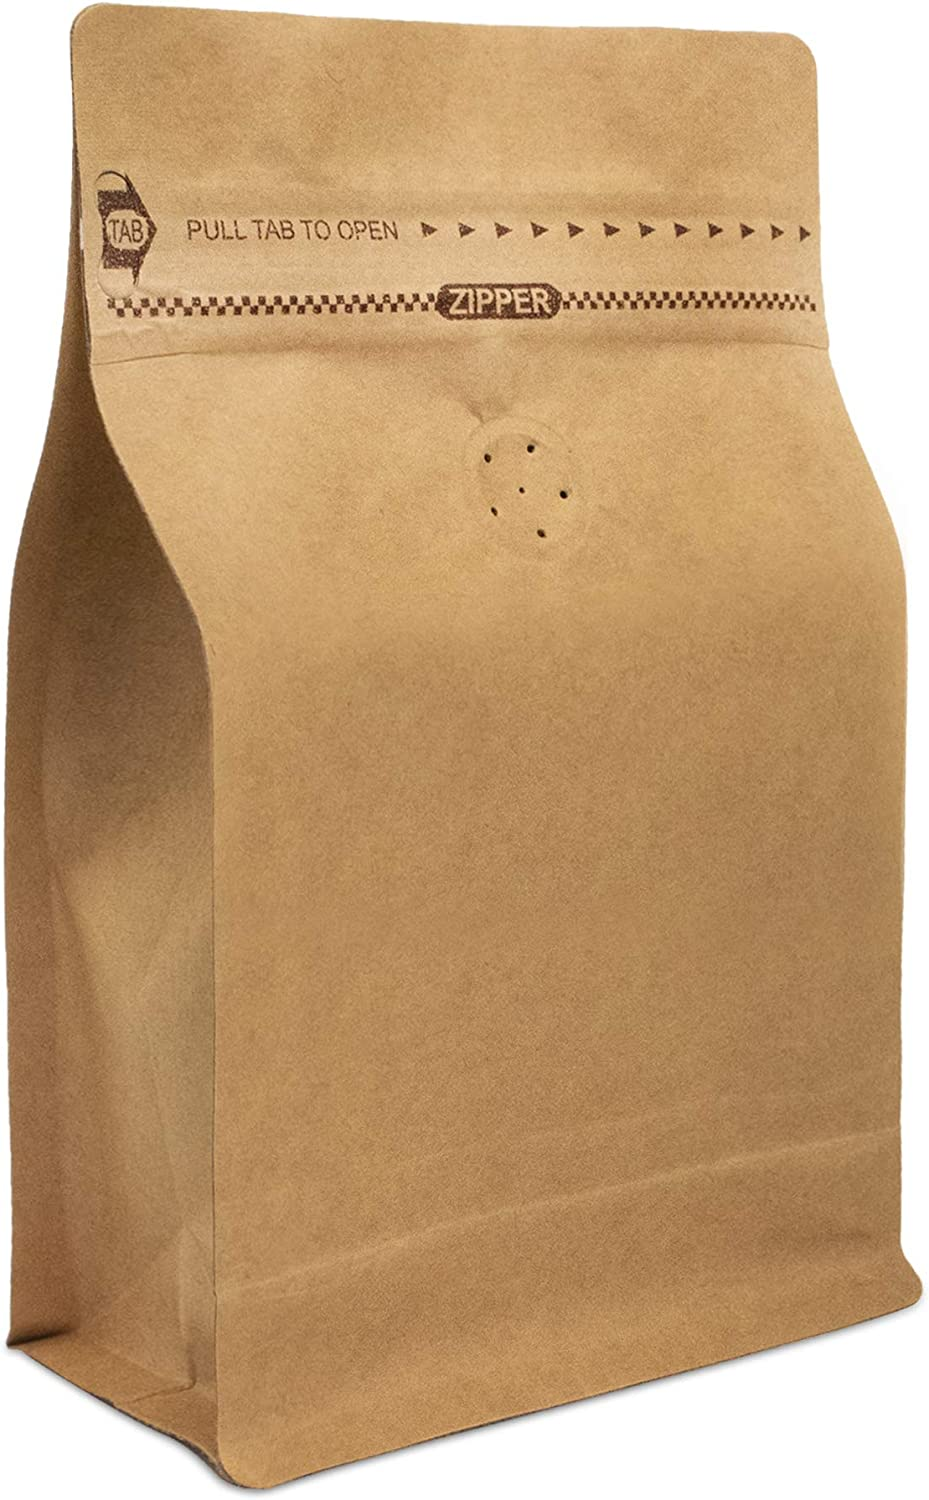 Natural Kraft Ultra-Cheap Deals Coffee Rapid rise Pouches Resealable with valve Bag